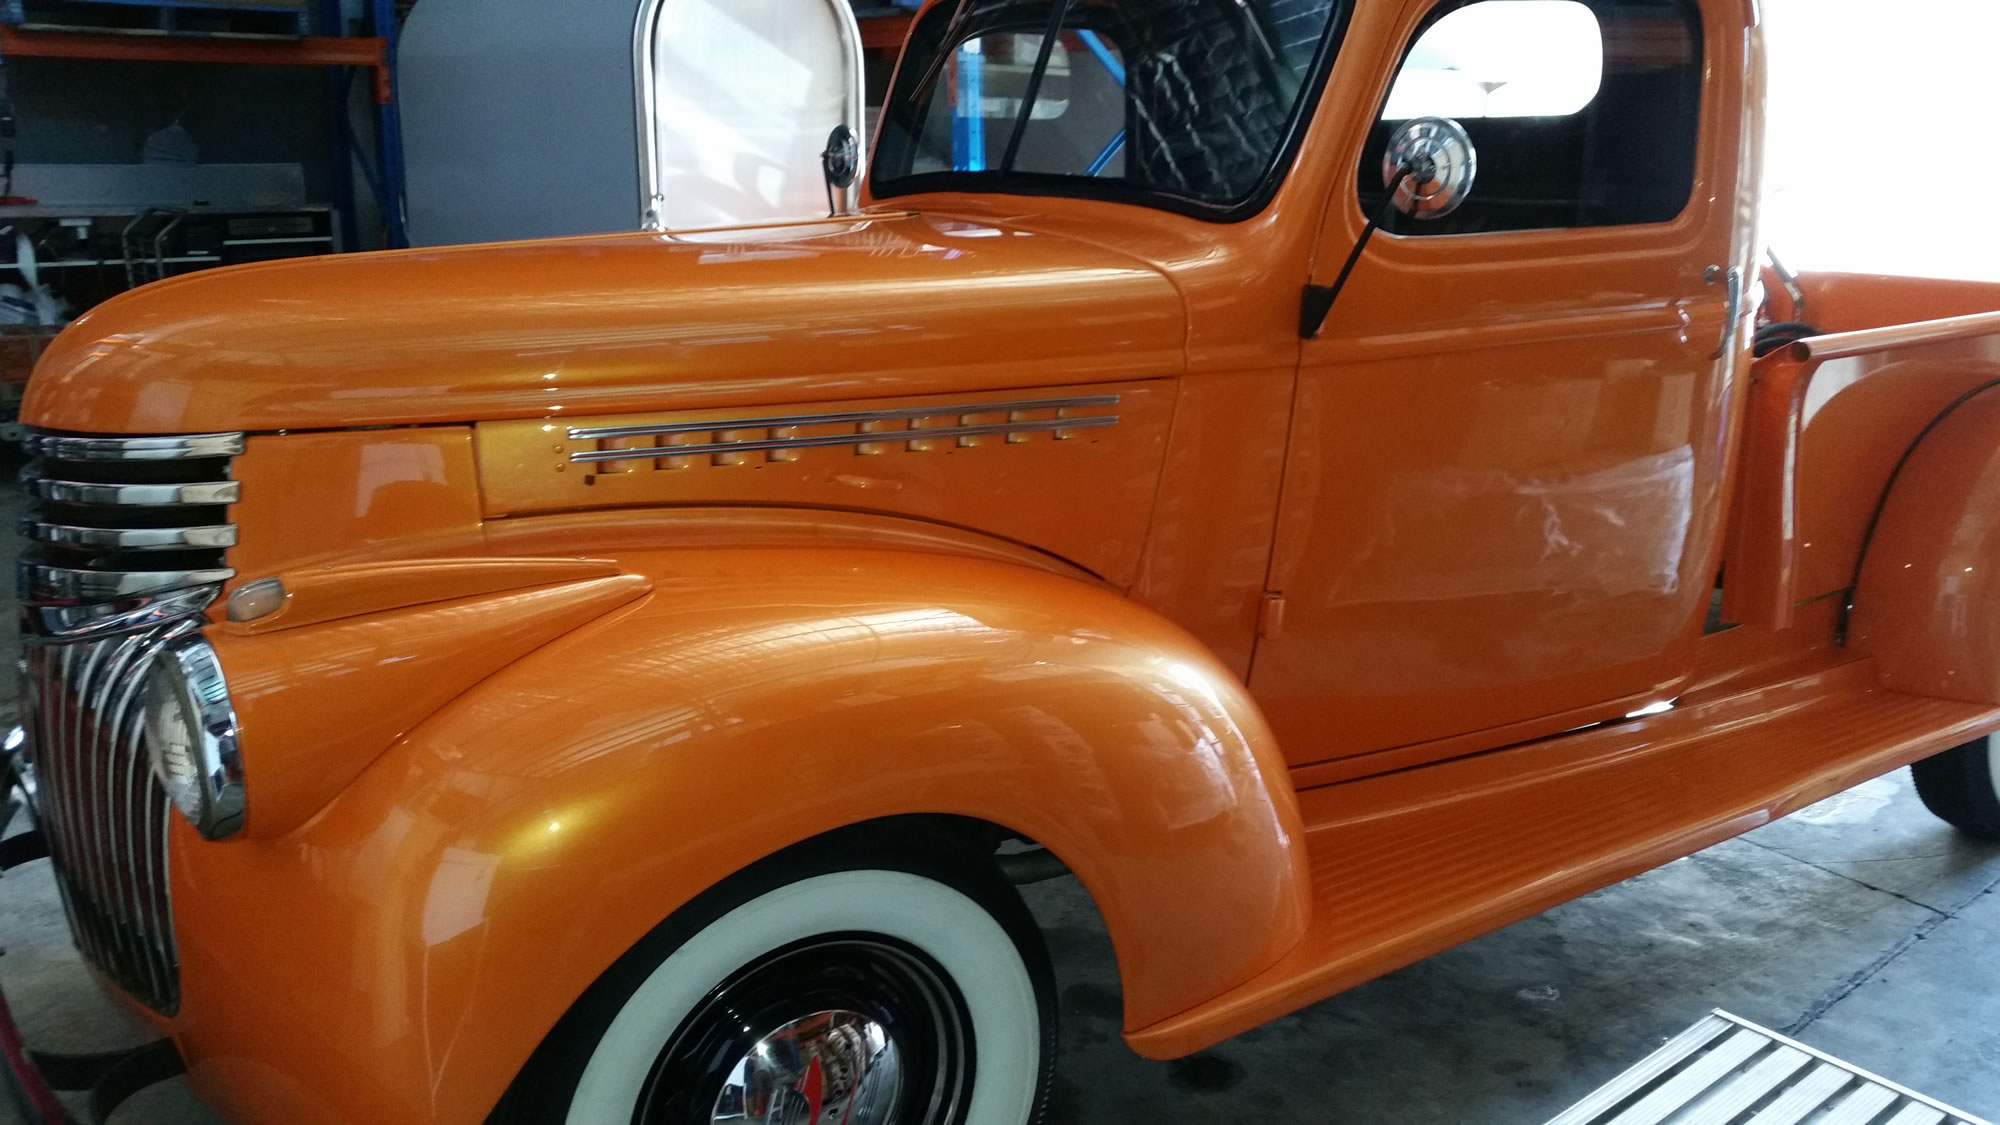 1941 Chevy Pickup - Ant's Auto Detailing